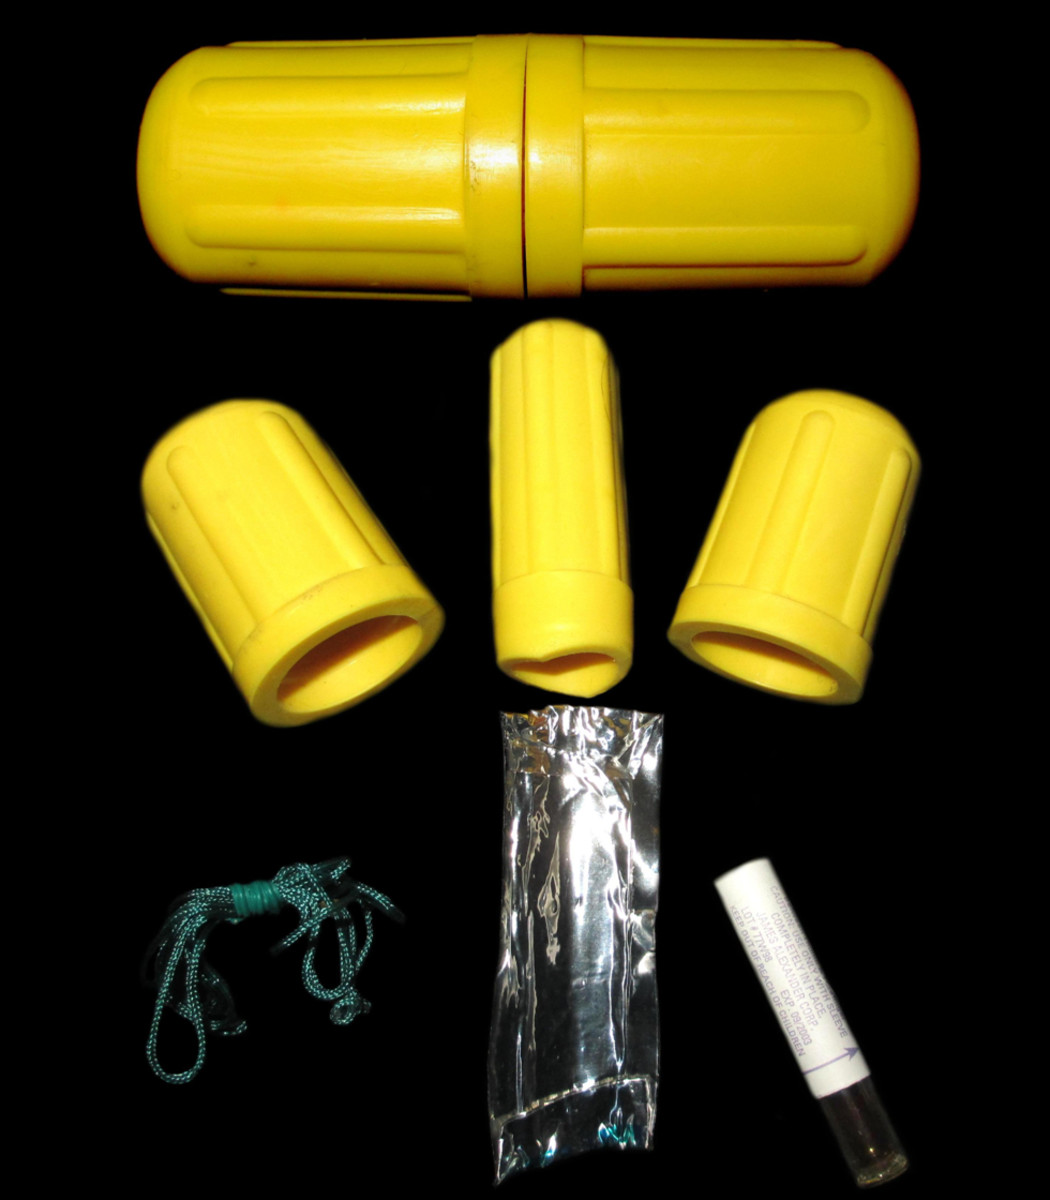 "An example of a commercially available kit to treat snakebite. This one consists of three suction devices (""suck""), rope to tie a tourniquet, a scalpel (""drain""), and iodine.  NEVER purchase or use these kits, as they always do more harm than good."